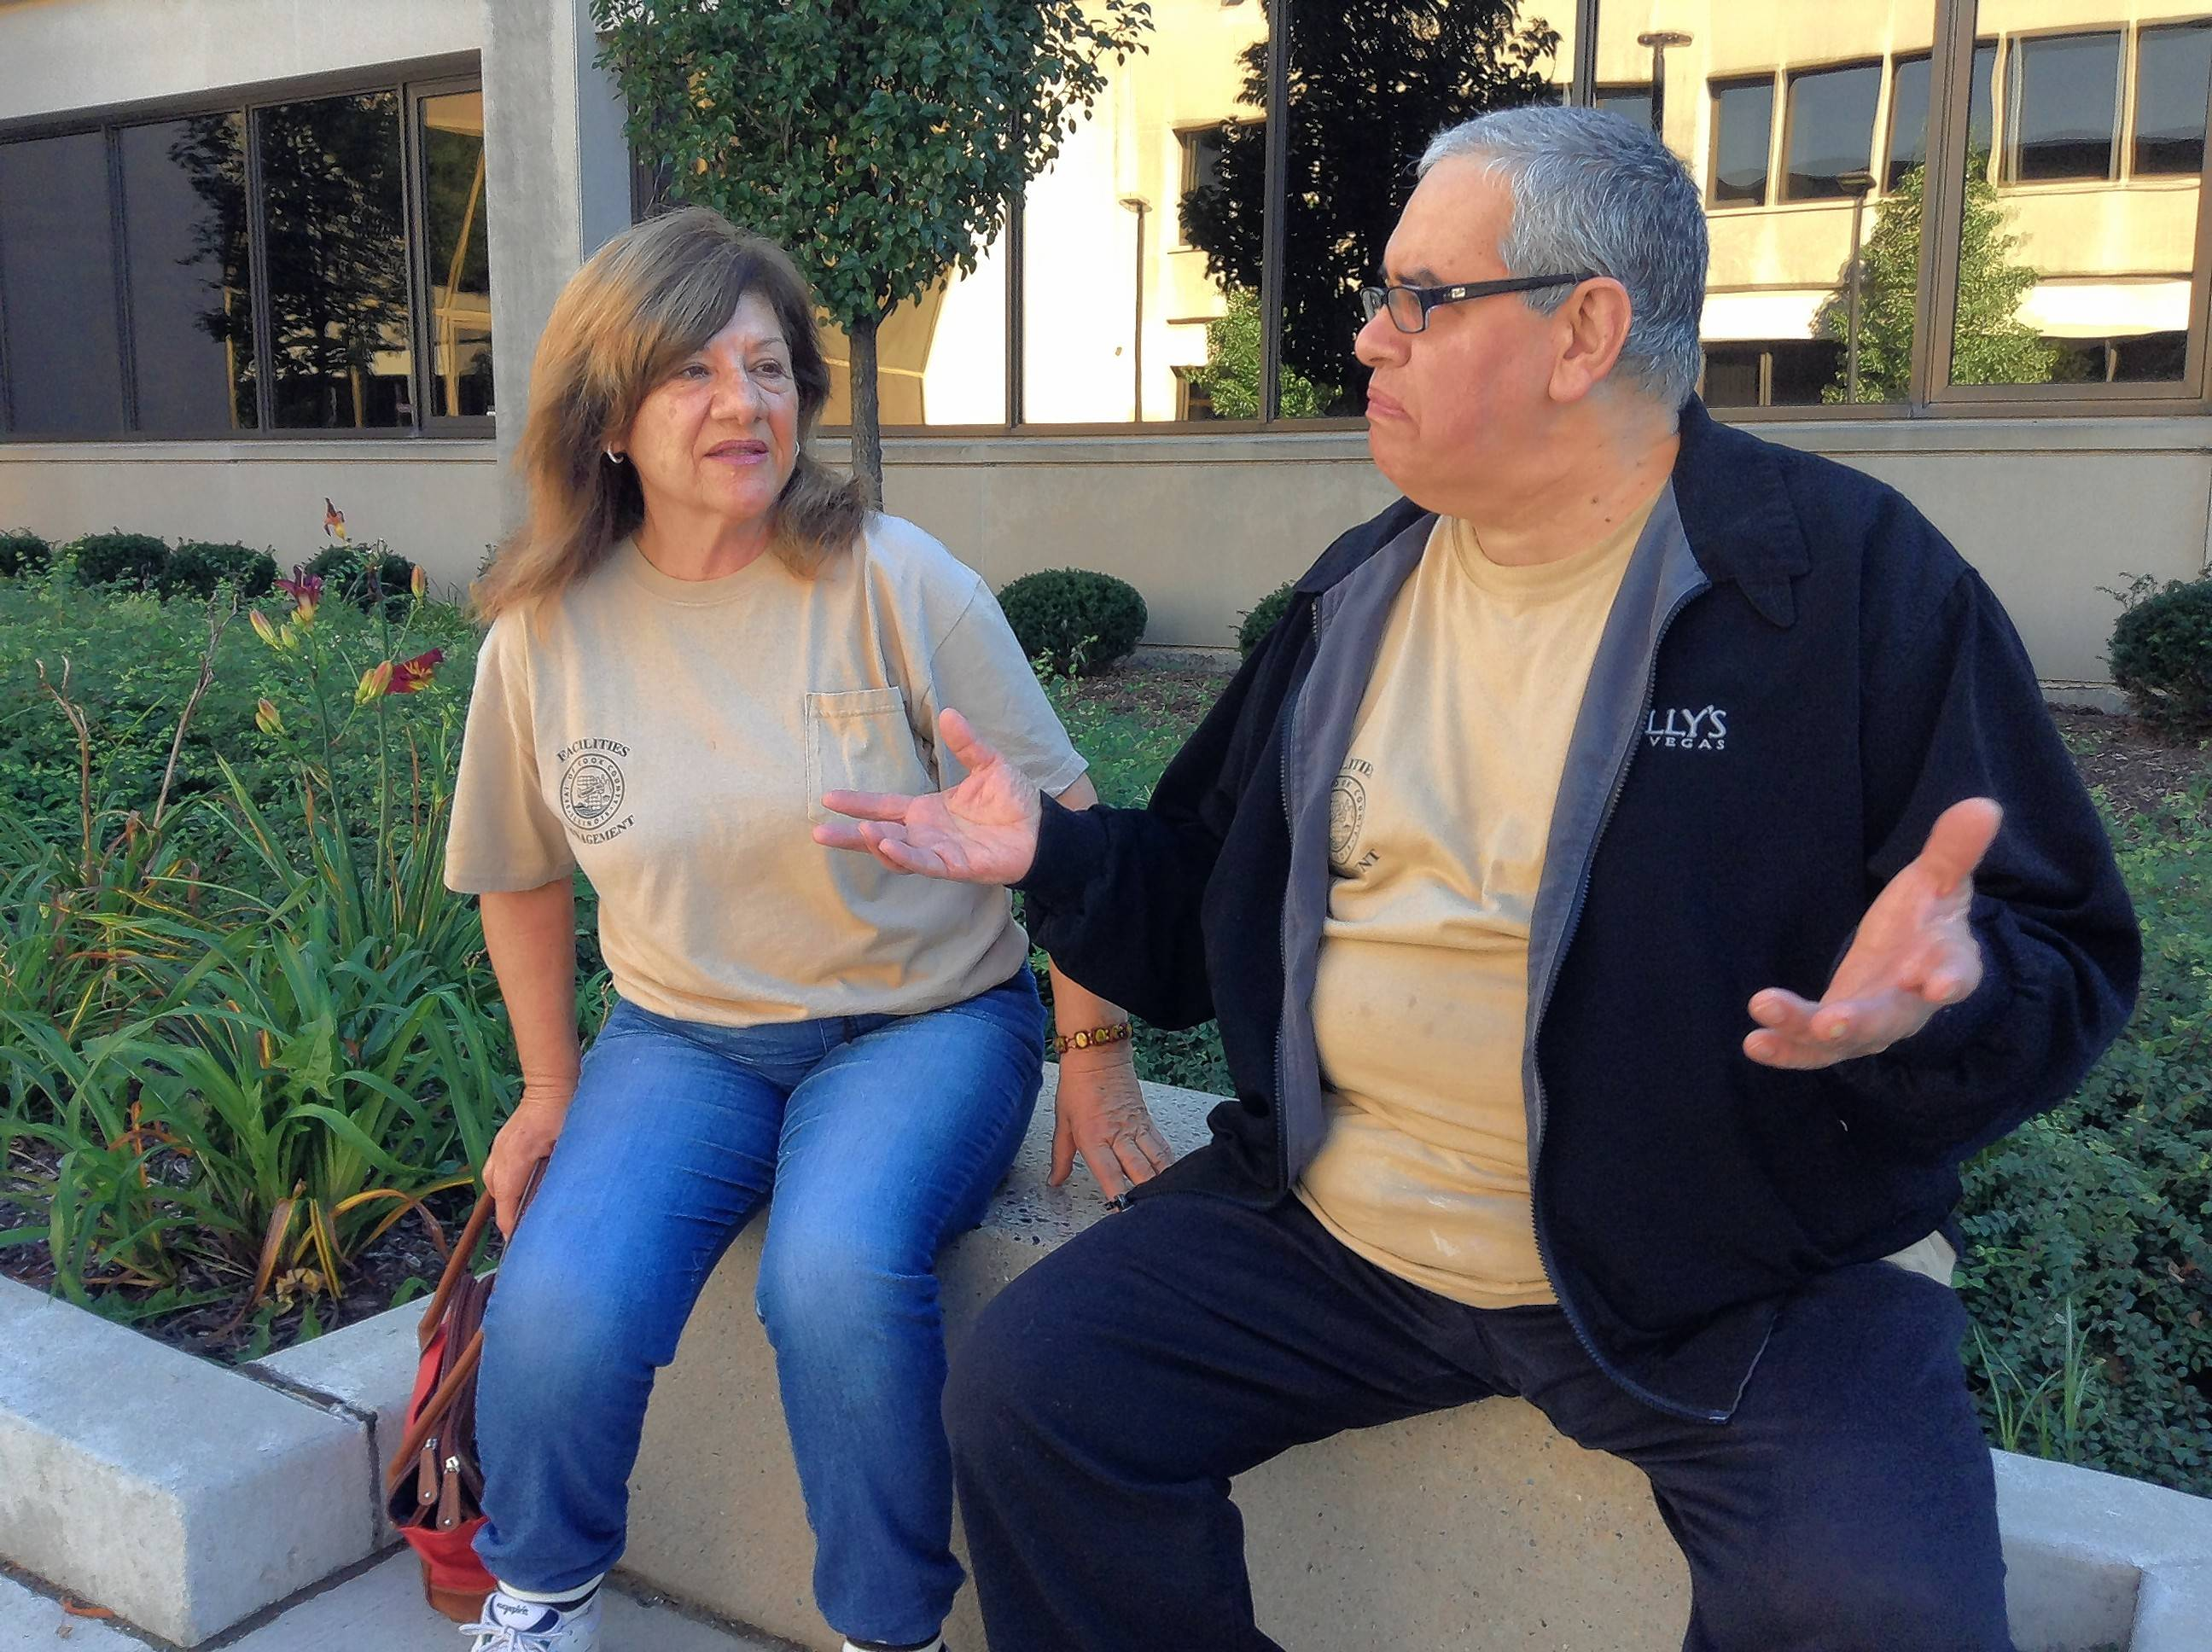 Outside the Rolling Meadows courthouse, co-workers Jim Stavrou and Georgia Charalambous discuss the Cubs' curse of the billy goat and how they might have played a part in lifting it.